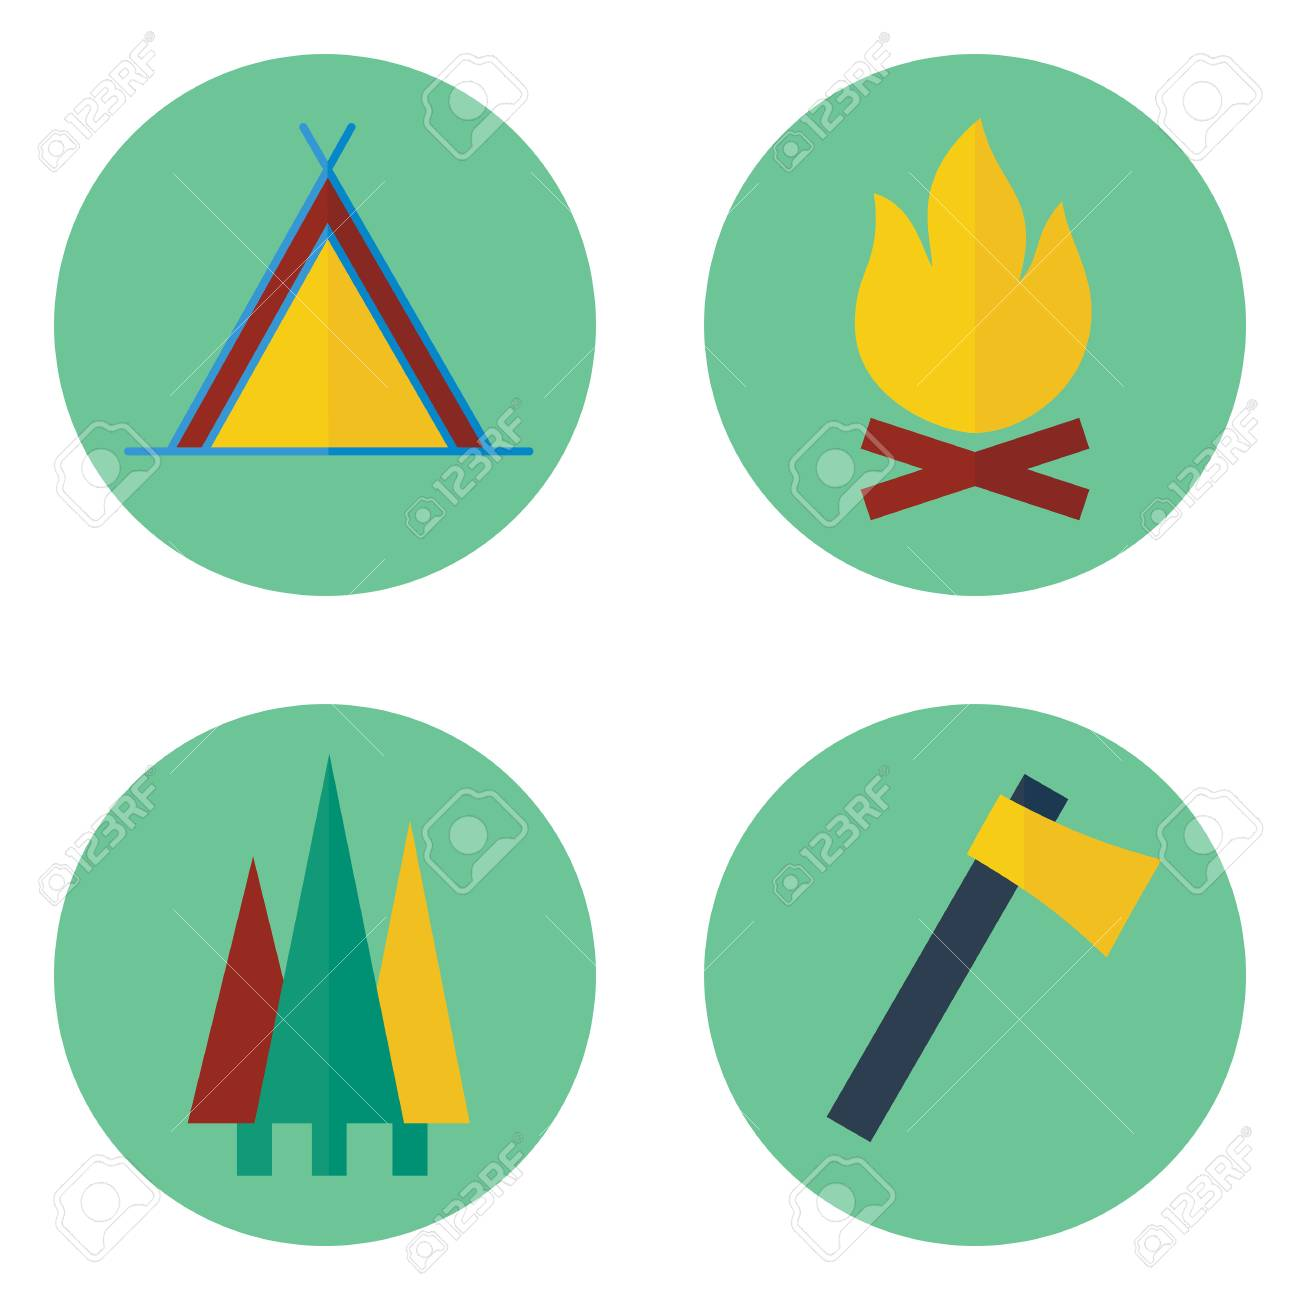 1300x1300 Set Of Camping Vector Icons. Contains Tent, Campfire, Axe, Trees